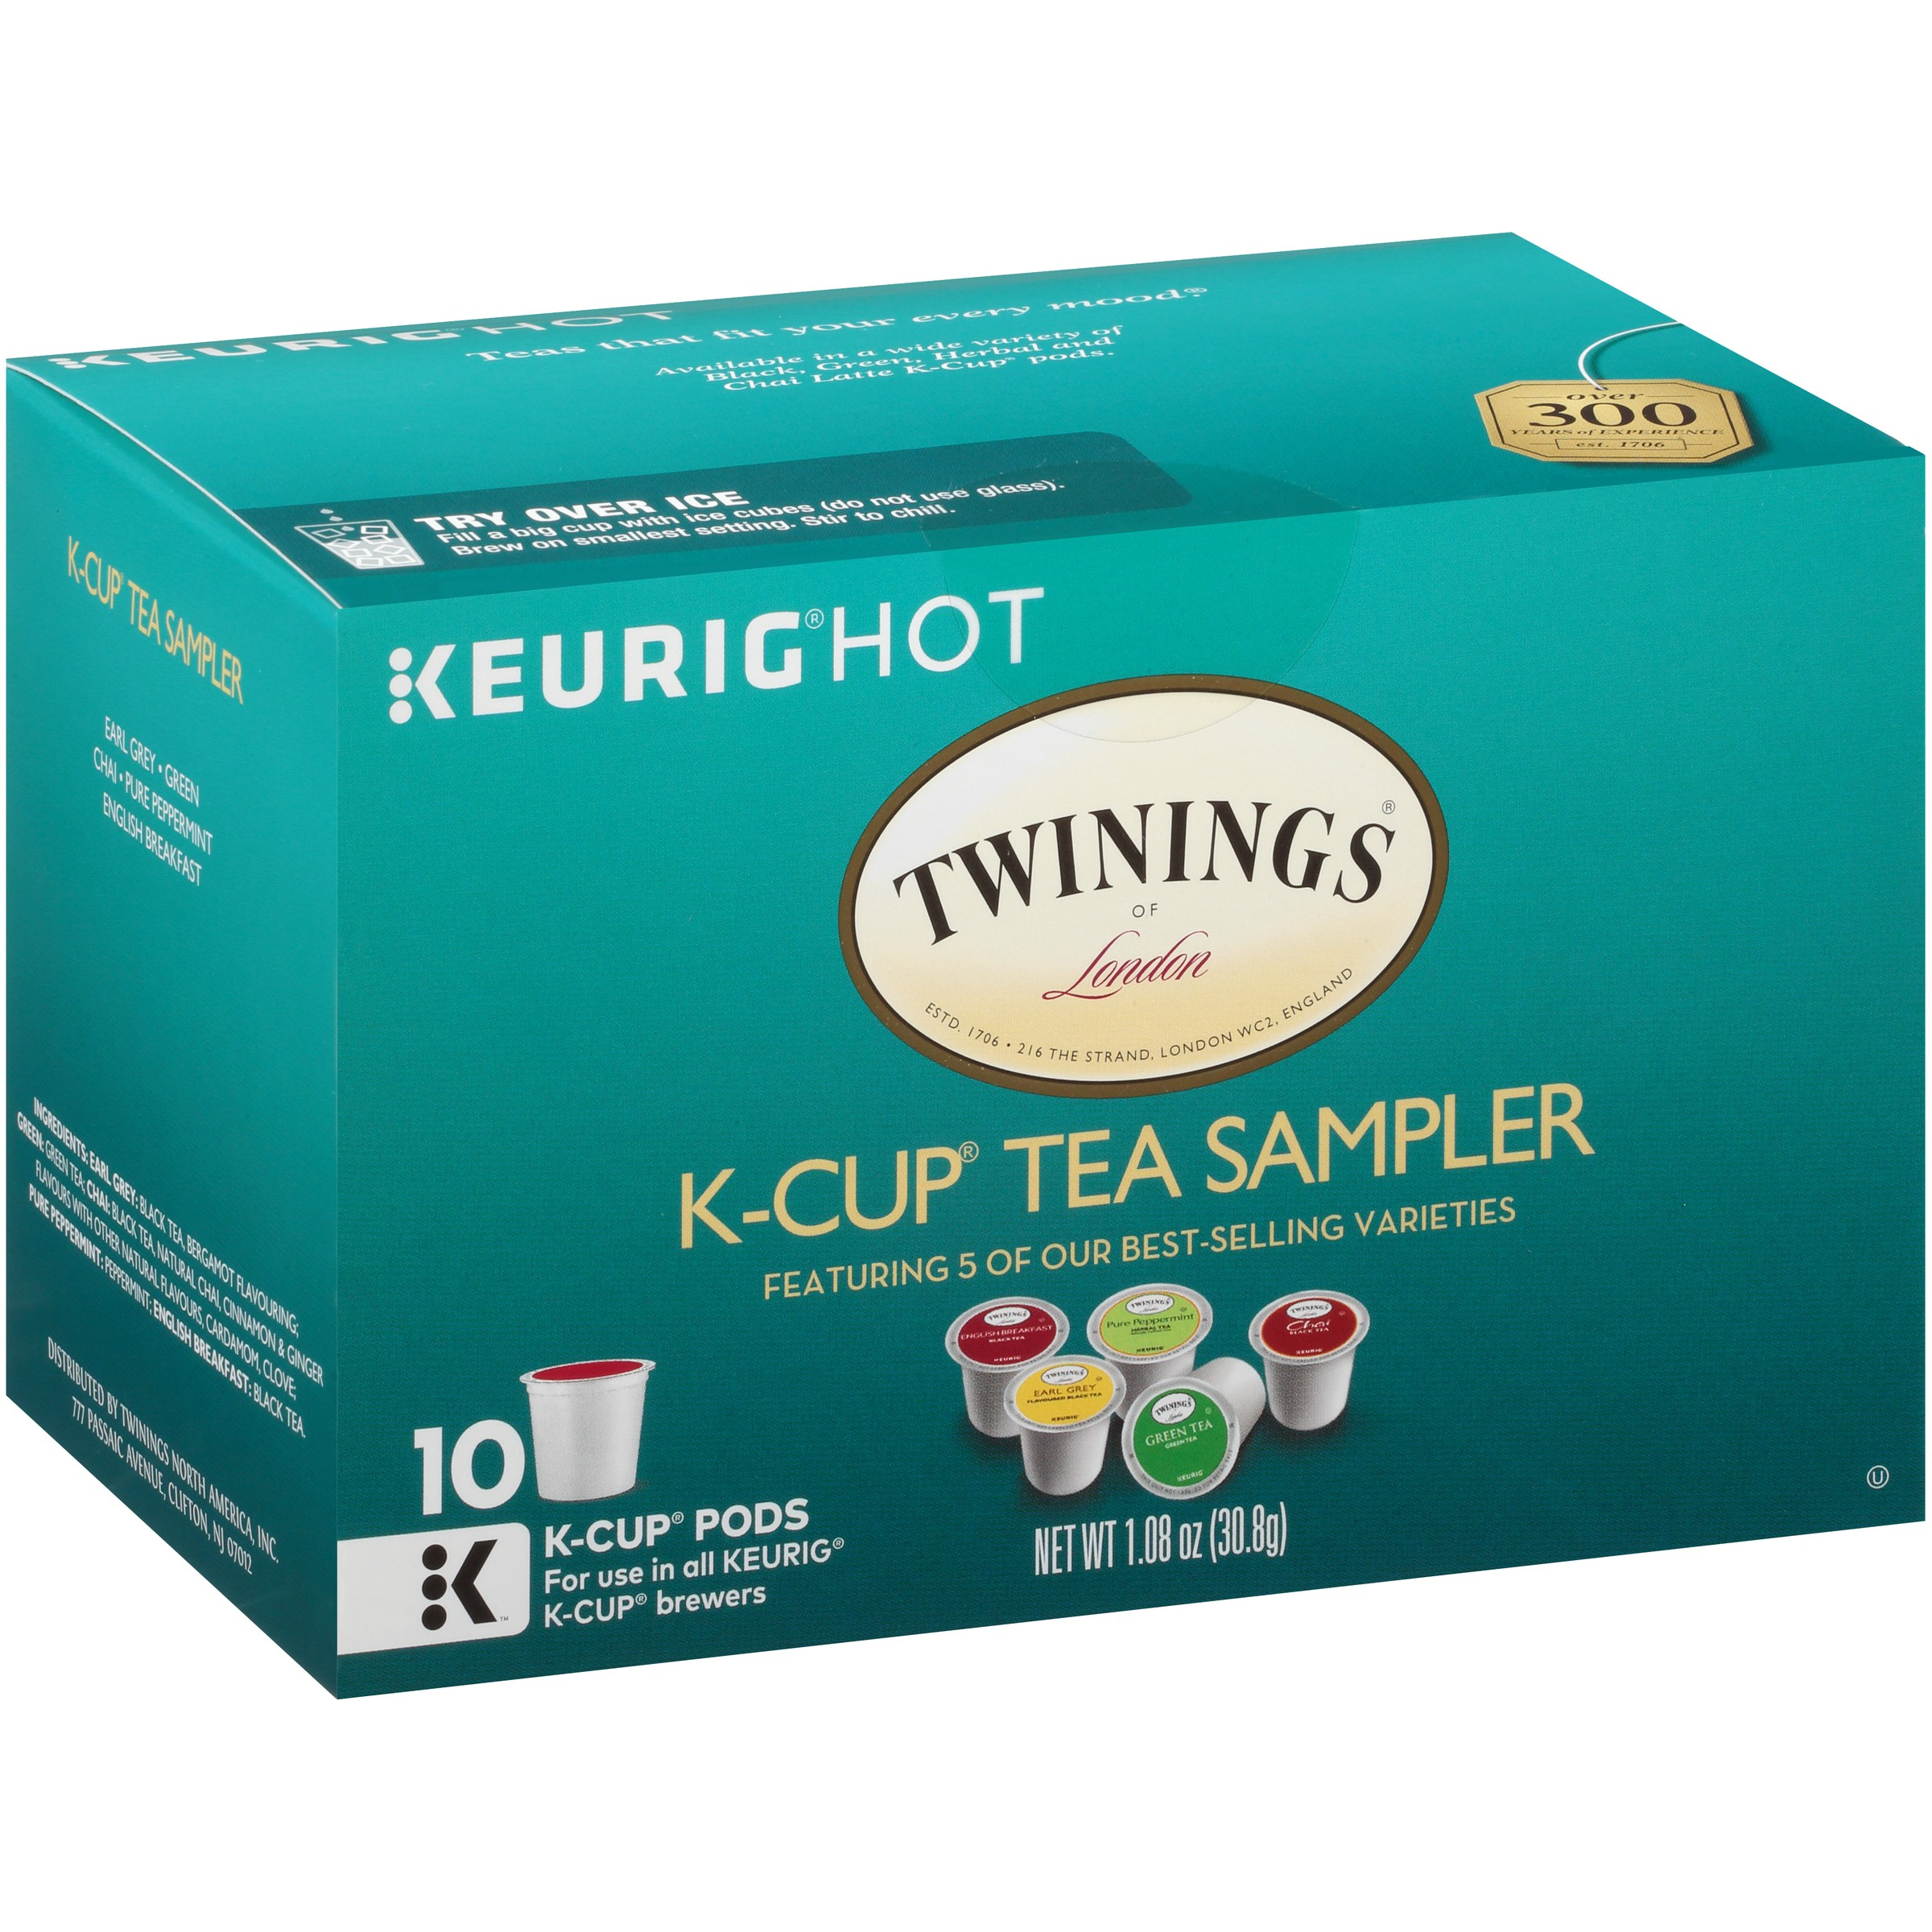 Twinings of London® K-Cup® Tea Sampler 1.08 oz. Box